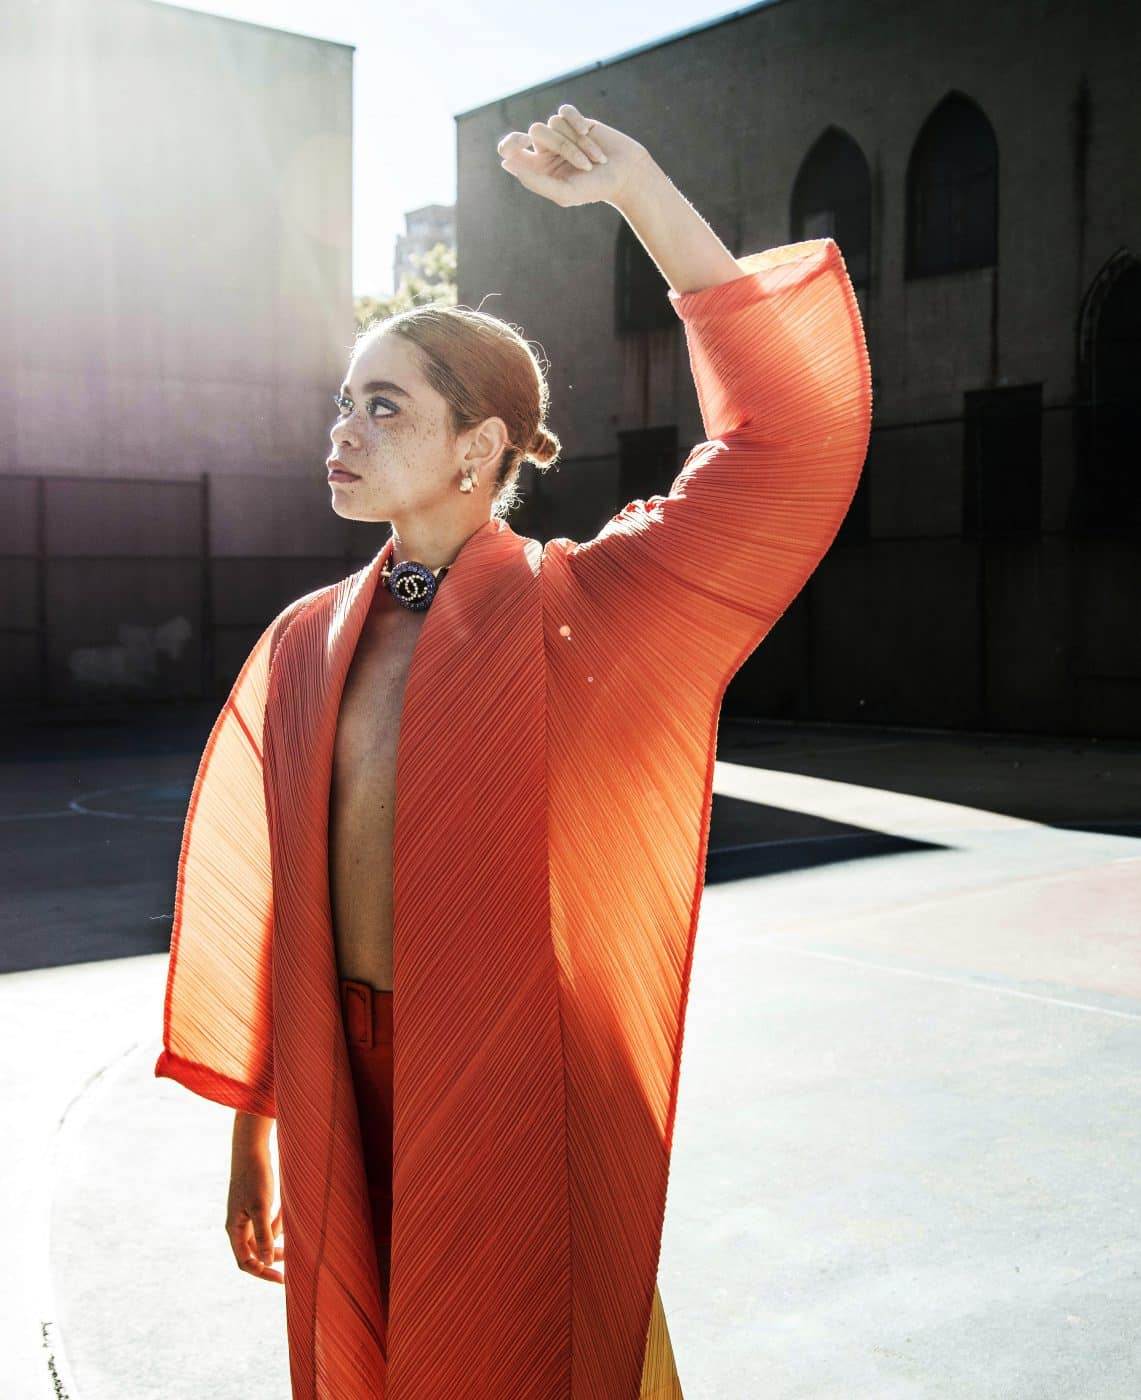 A model posing outdoors in an orange-and-yellow ISSEY MIYAKE COCOON JACKET, offered by Evolution